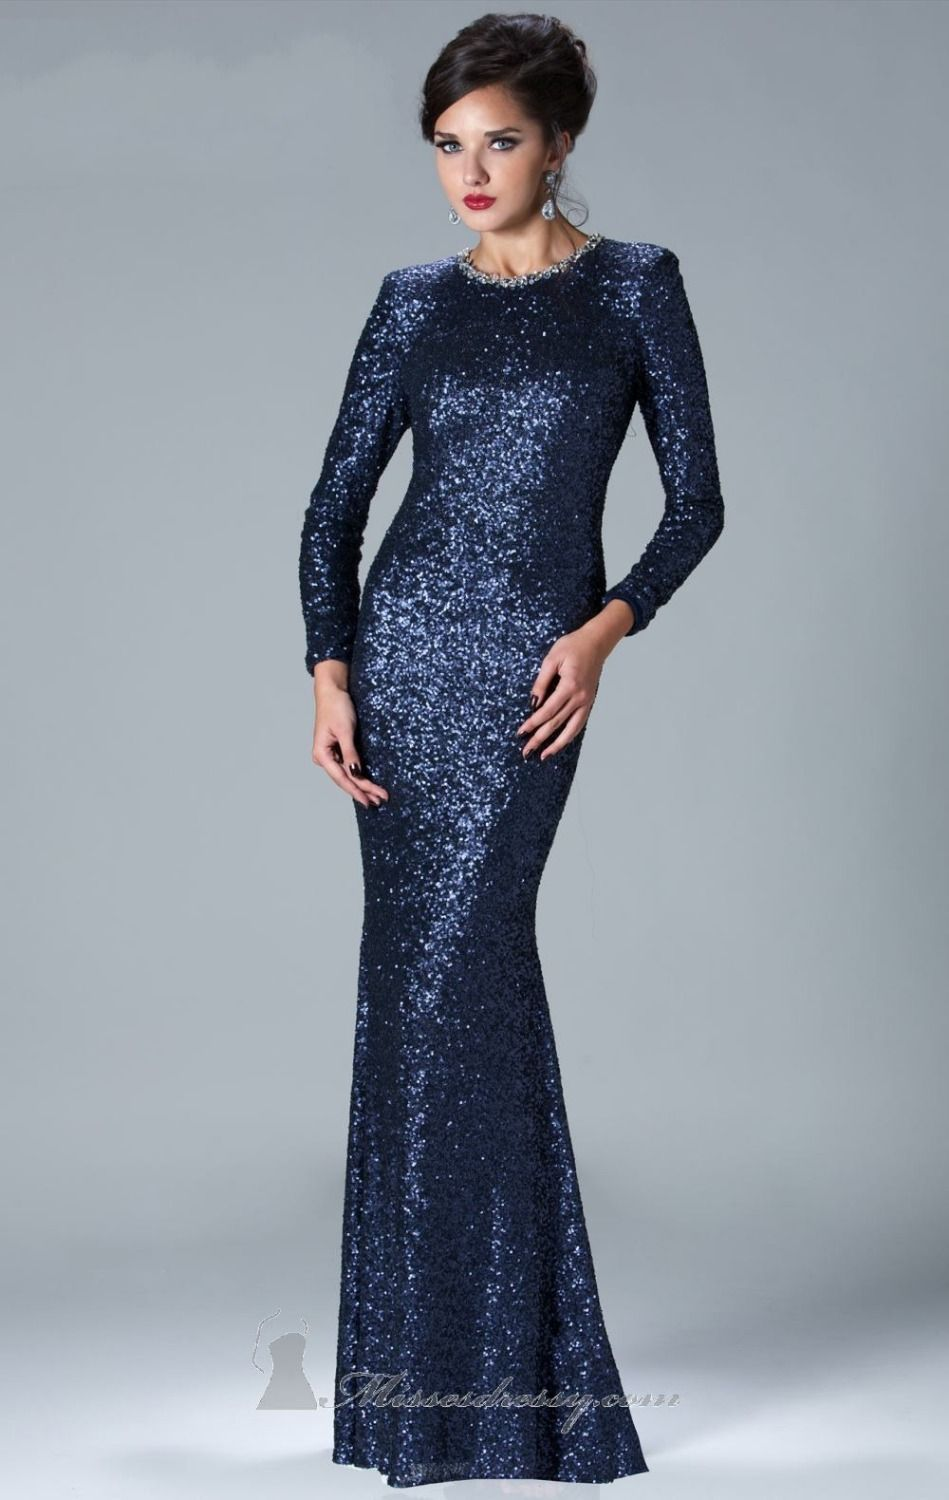 Pin By Muppetje On Dresses Pinterest Sleeved Dress Sequins And